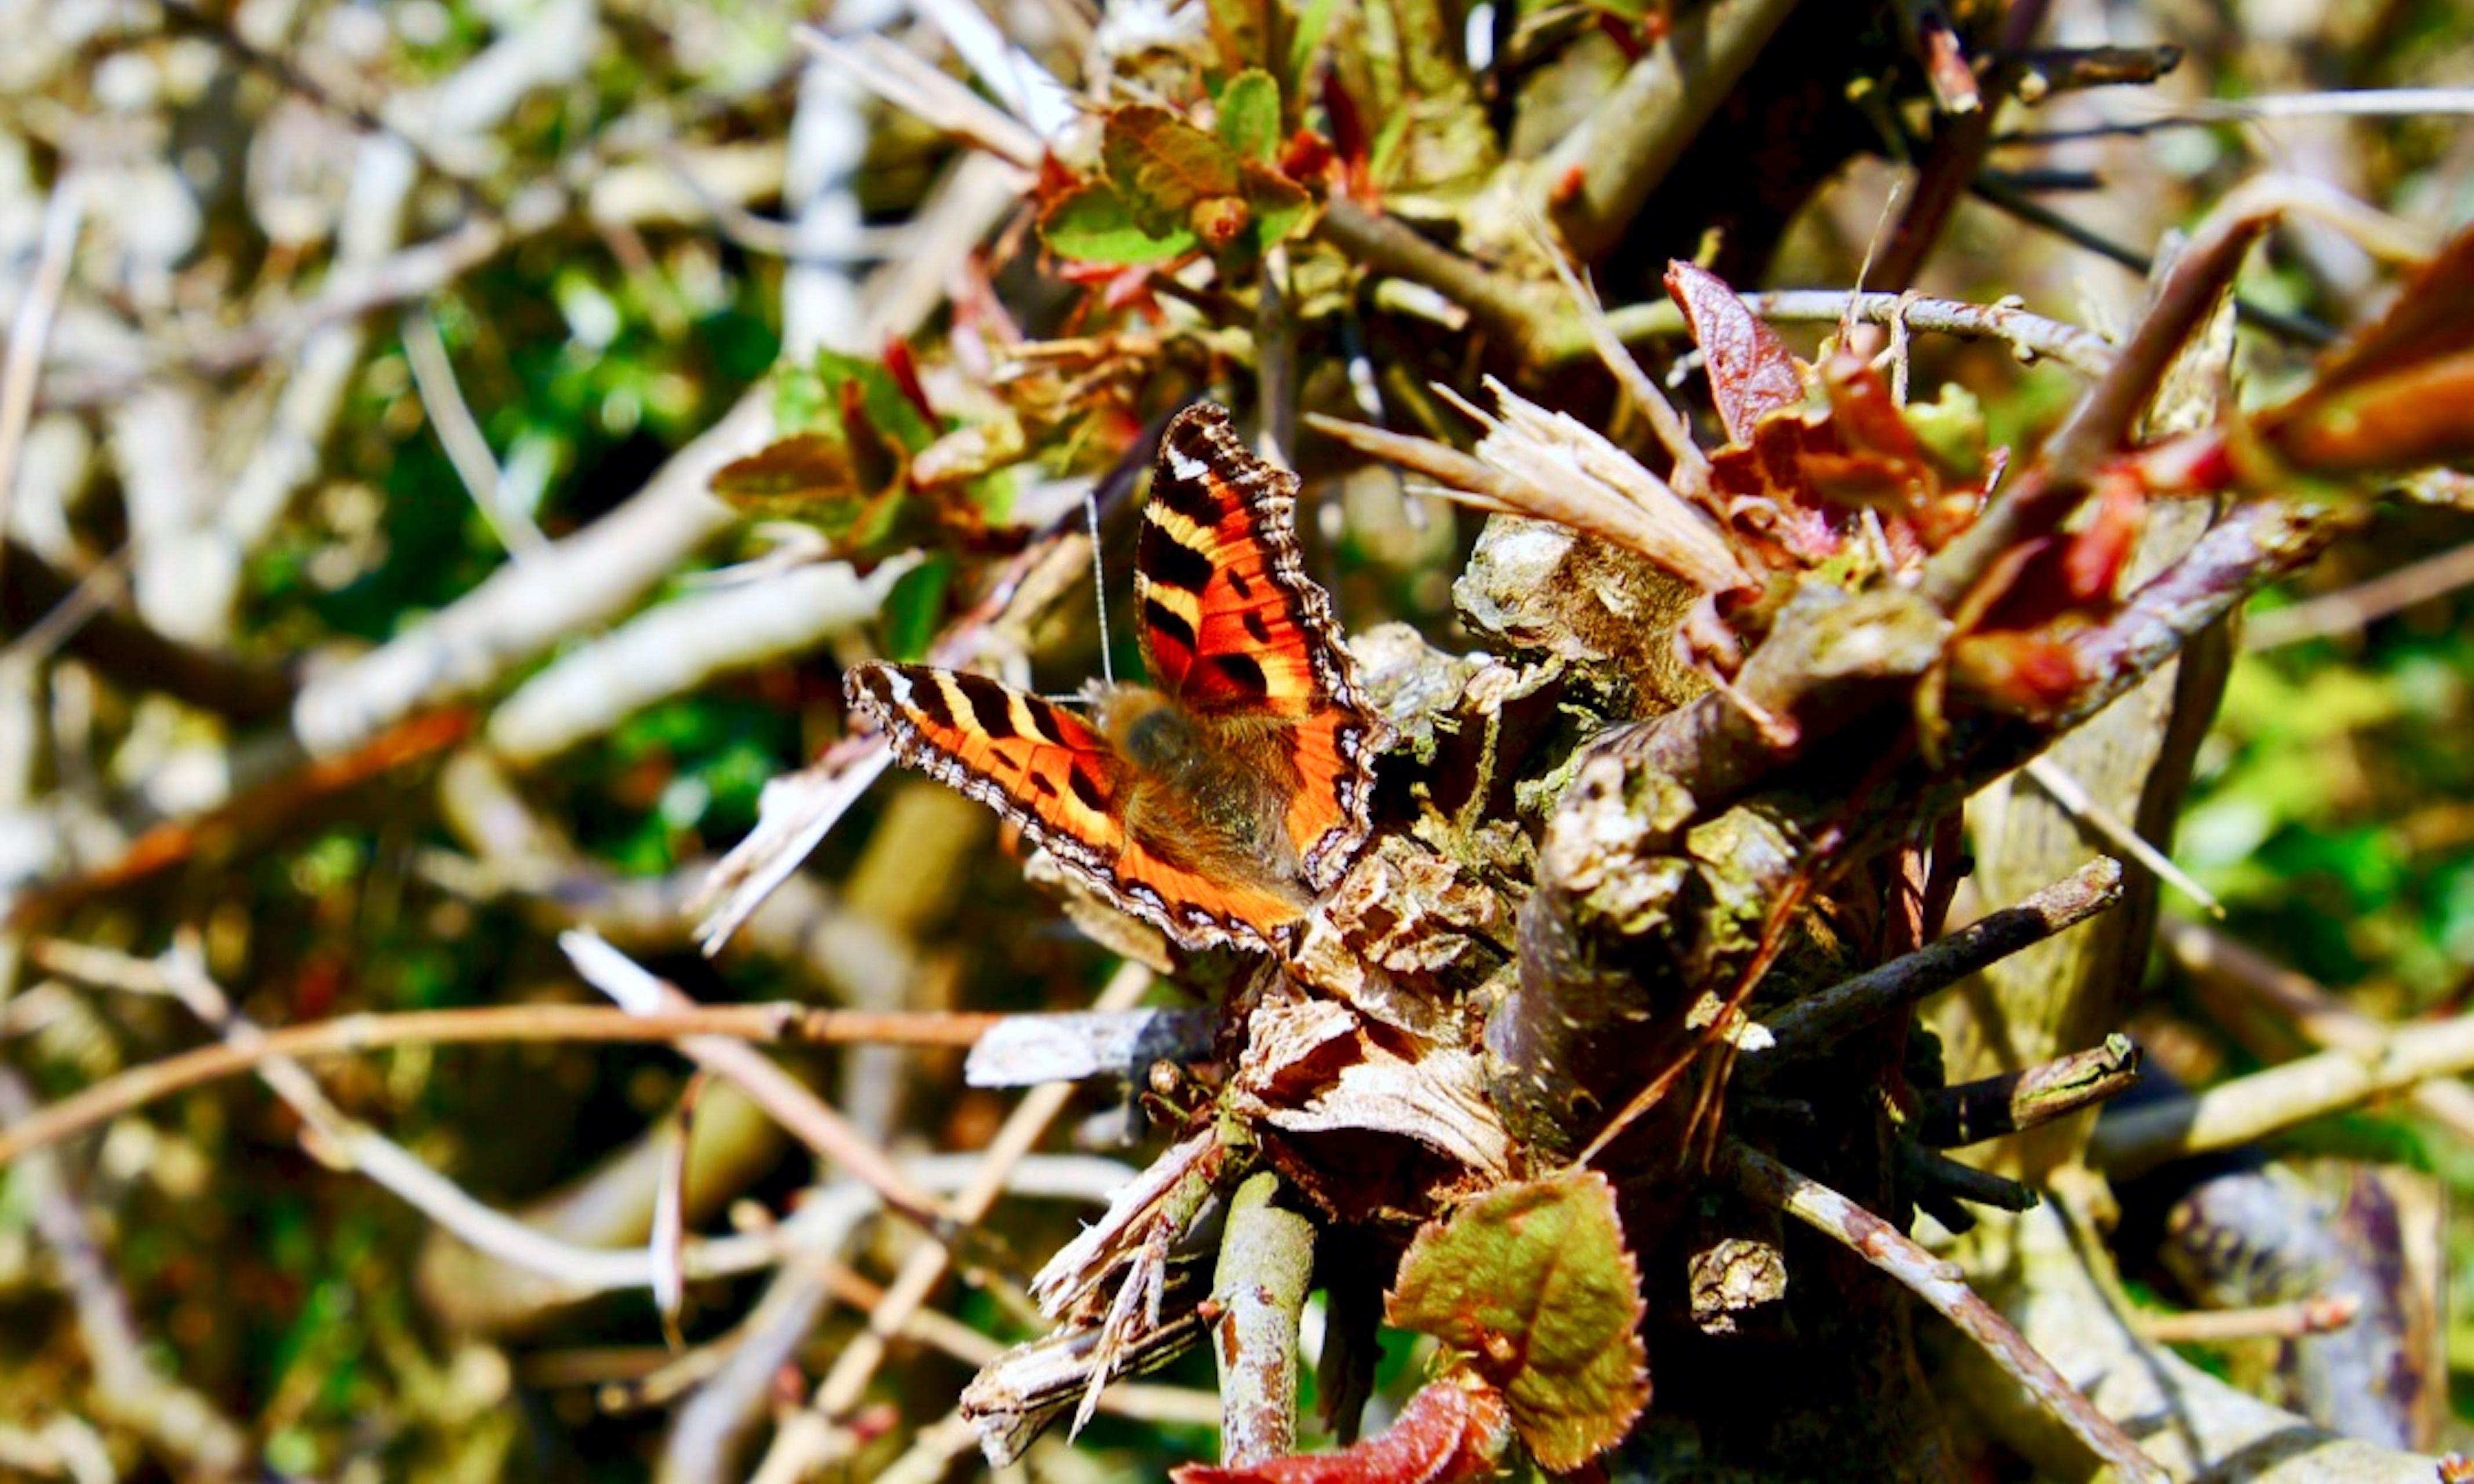 Country diary: butterflies are not as delicate as they look